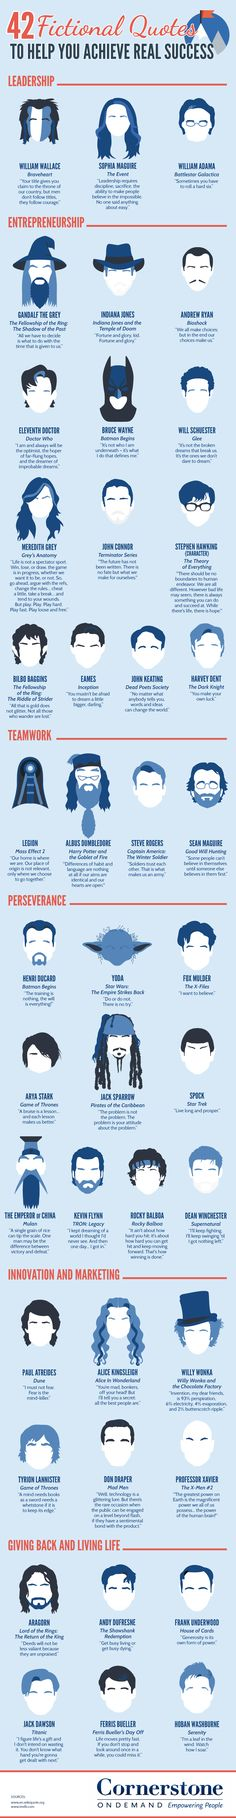 42 Fictional Quotes to Help You Achieve Real Success #infographic #Quotes #Leadership #Entrepreneurship #Motivation